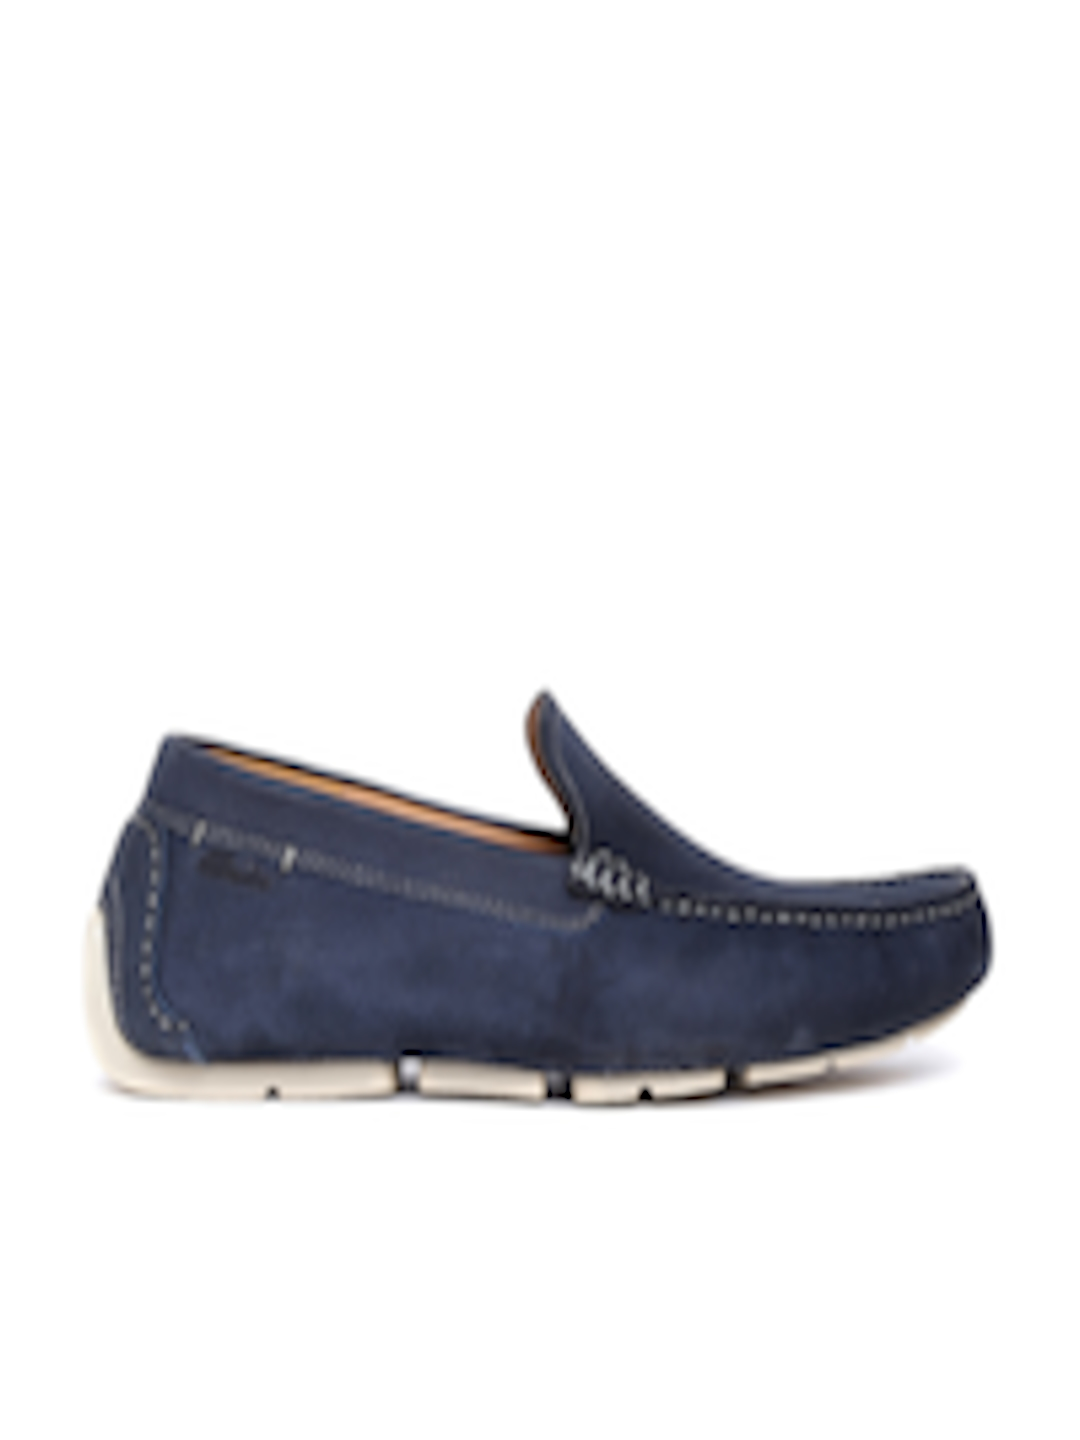 e6c871aee6b Buy Clarks Men Navy Leather Driving Shoes - Casual Shoes for Men 1239812